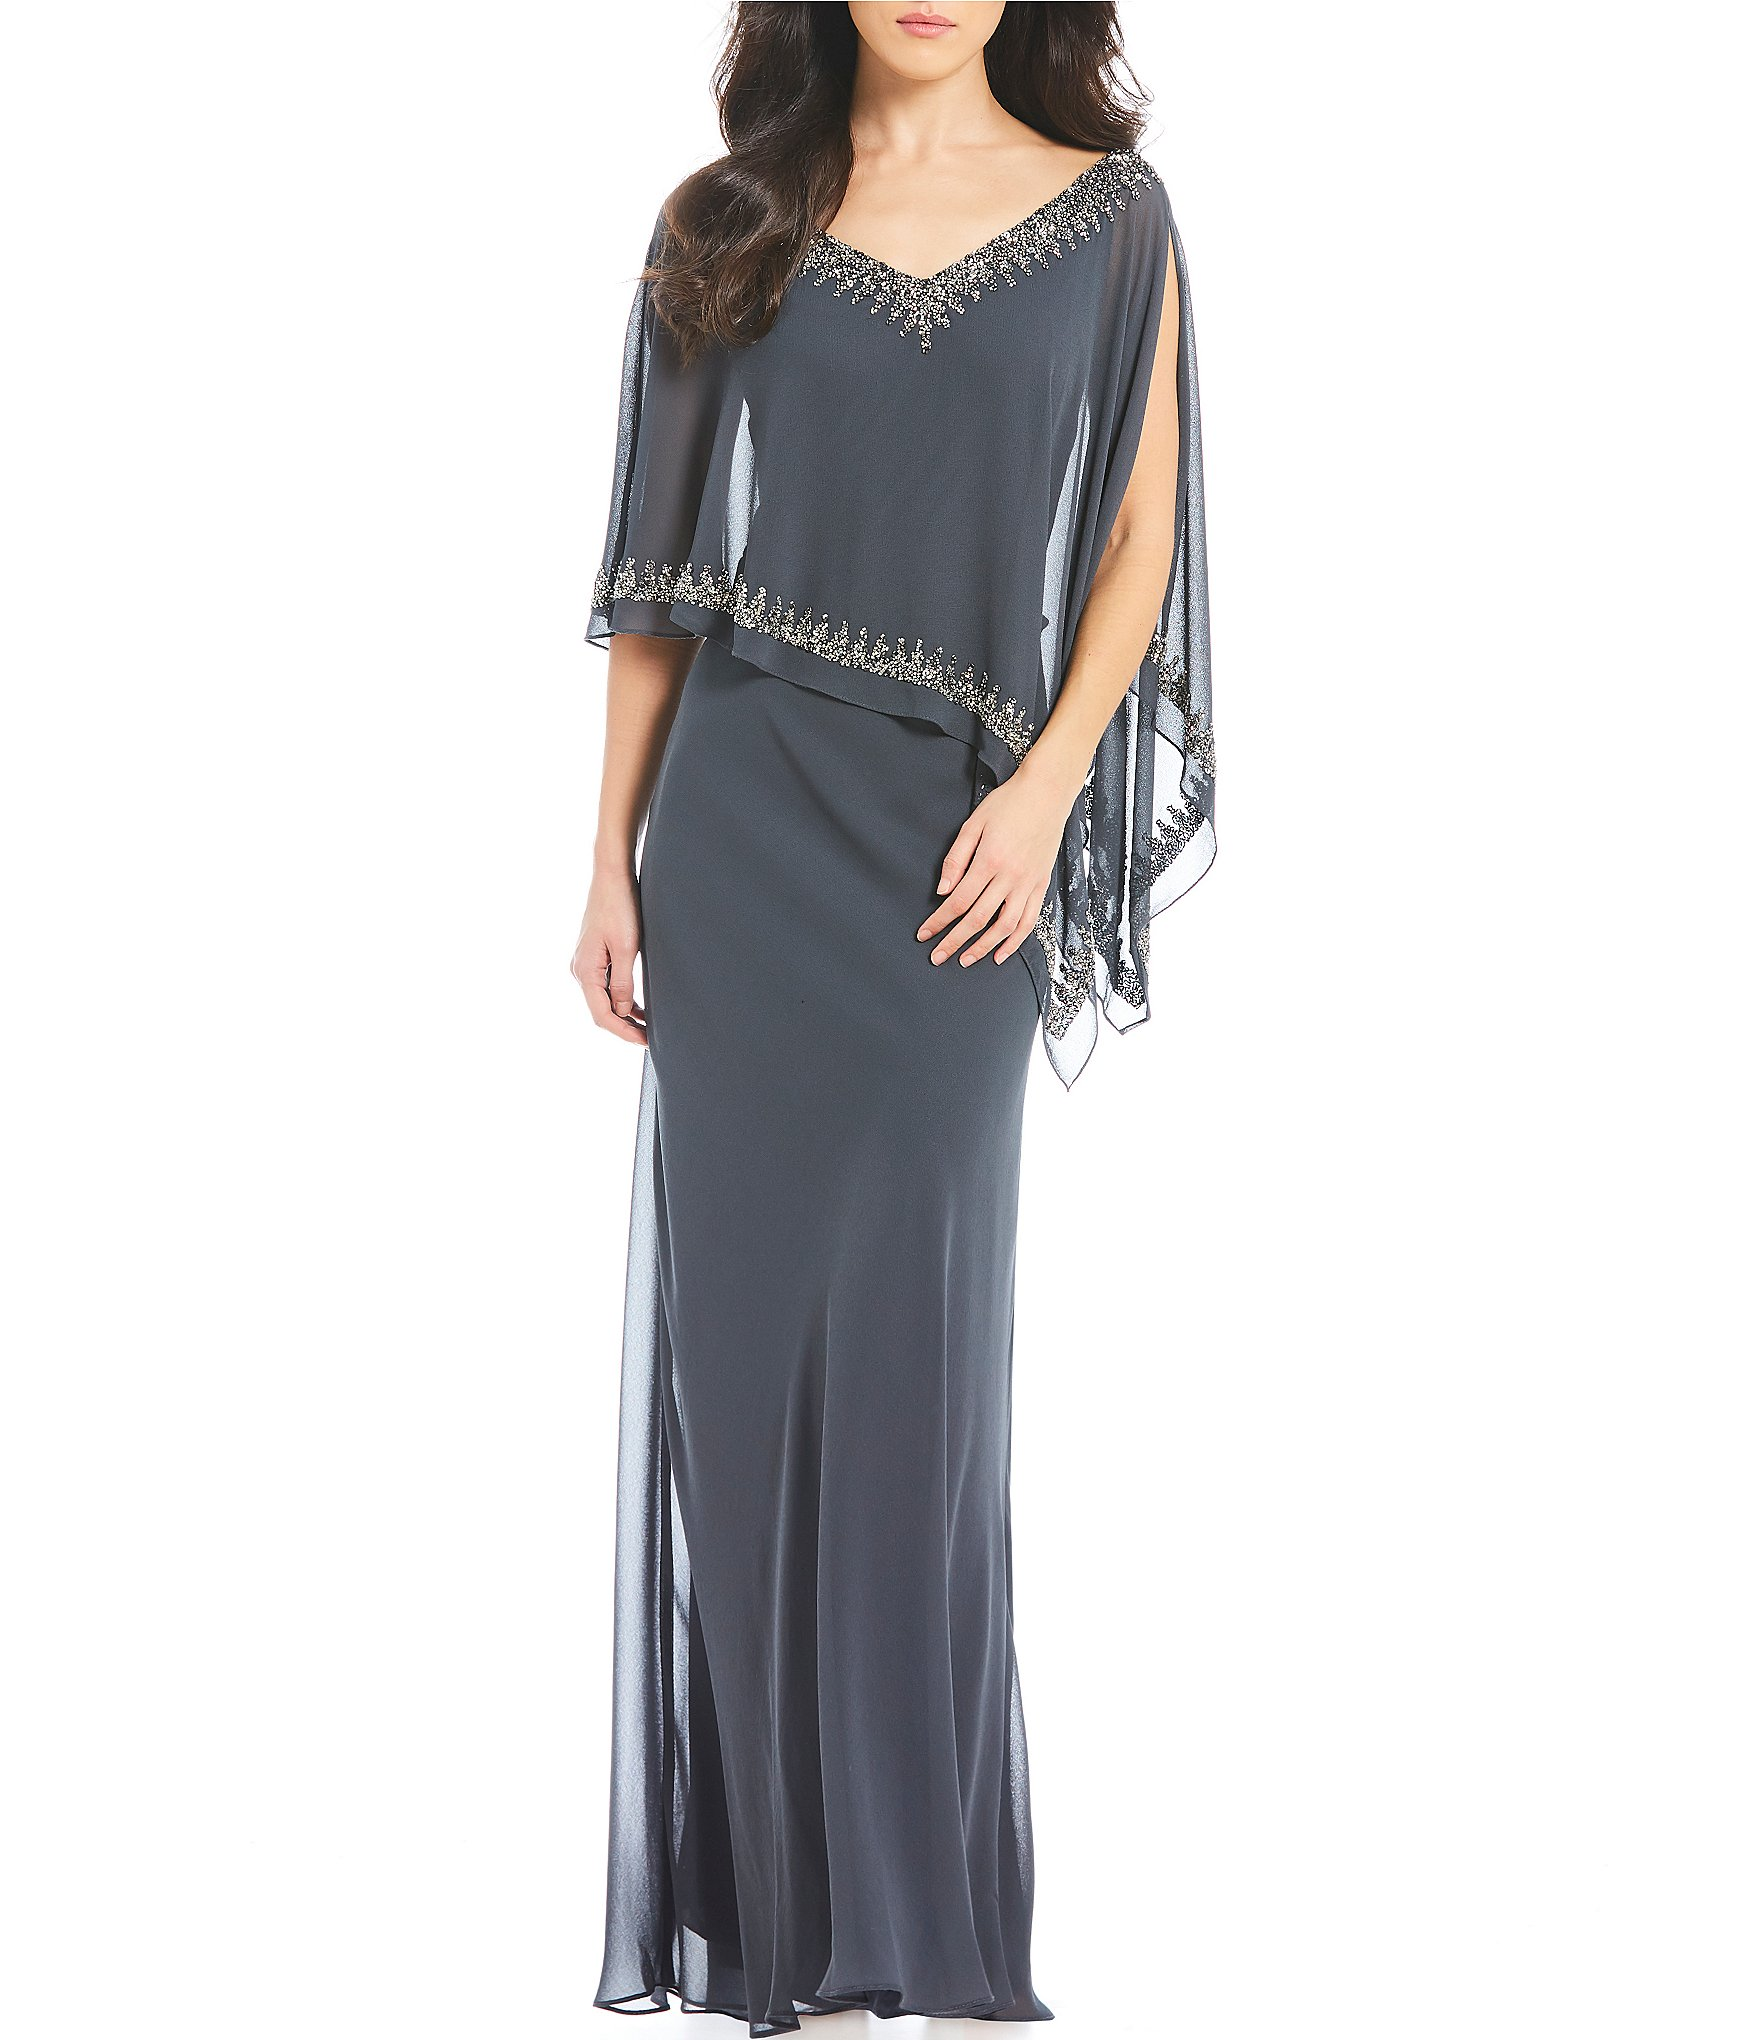 c3593ce356 Jkara Mother of the Bride Dresses   Gowns